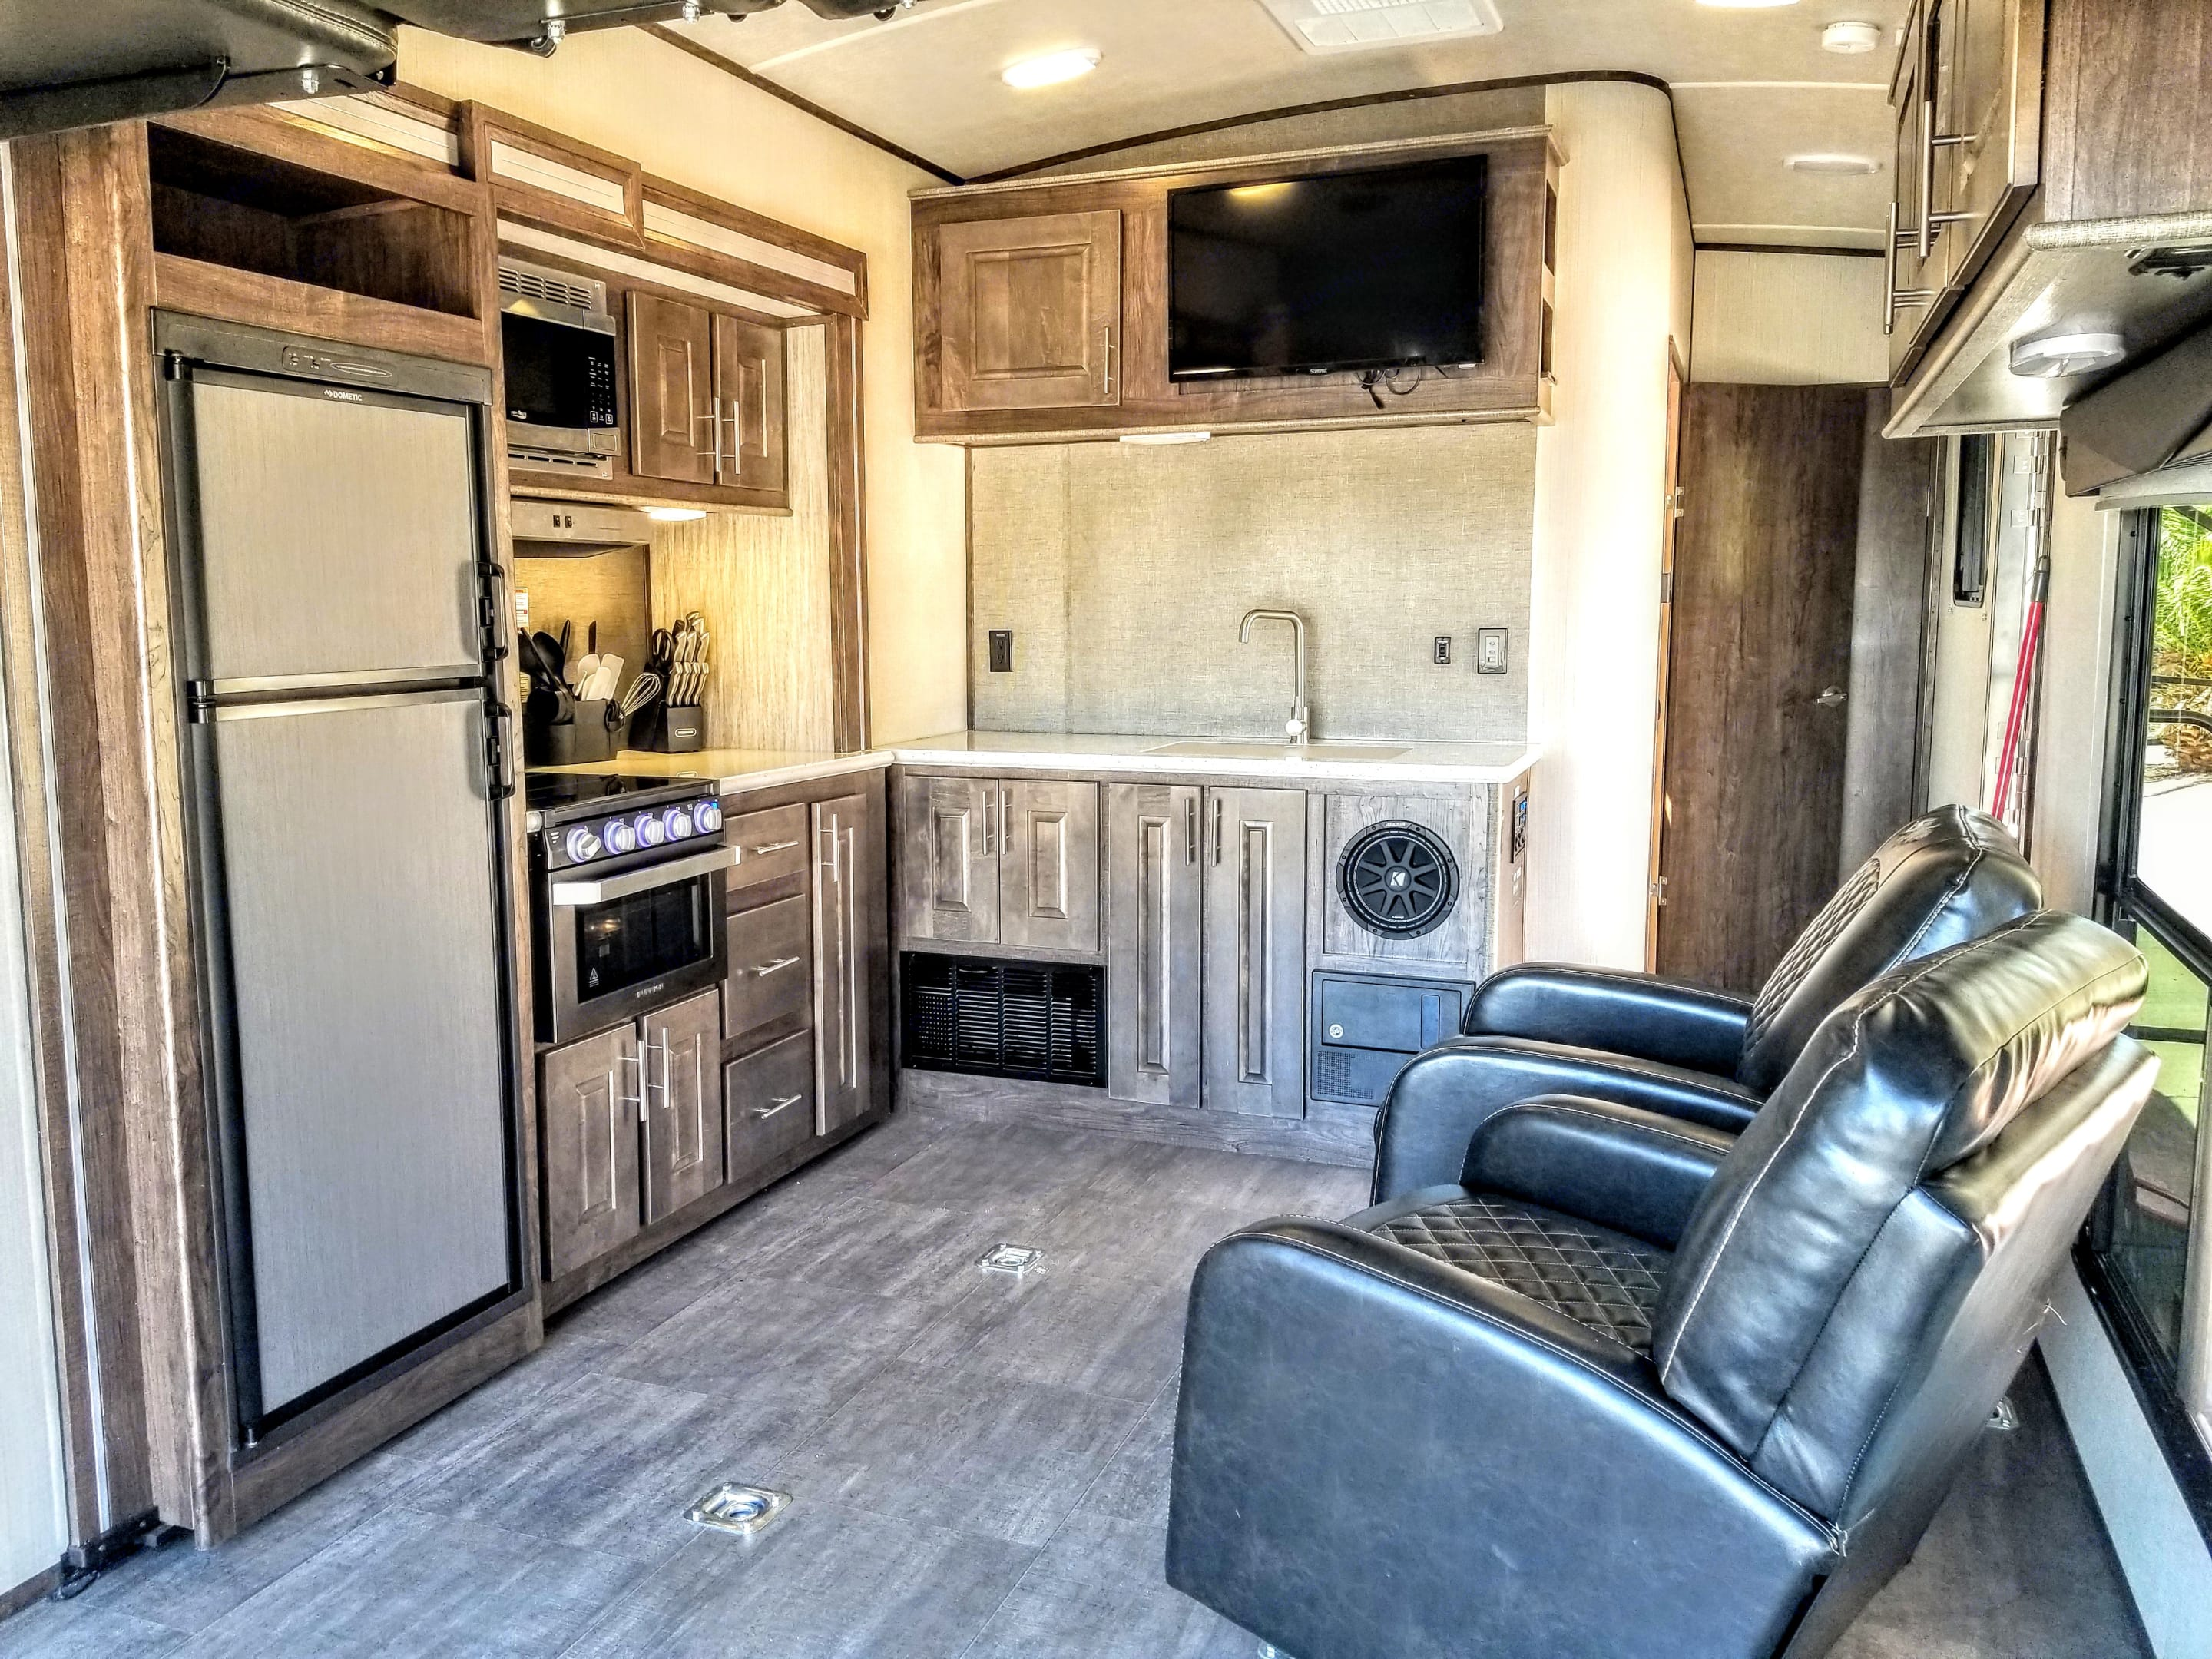 Good size kitchen, slide is fully extended. . Cruiser Rv Corp Stryker 2613 2019